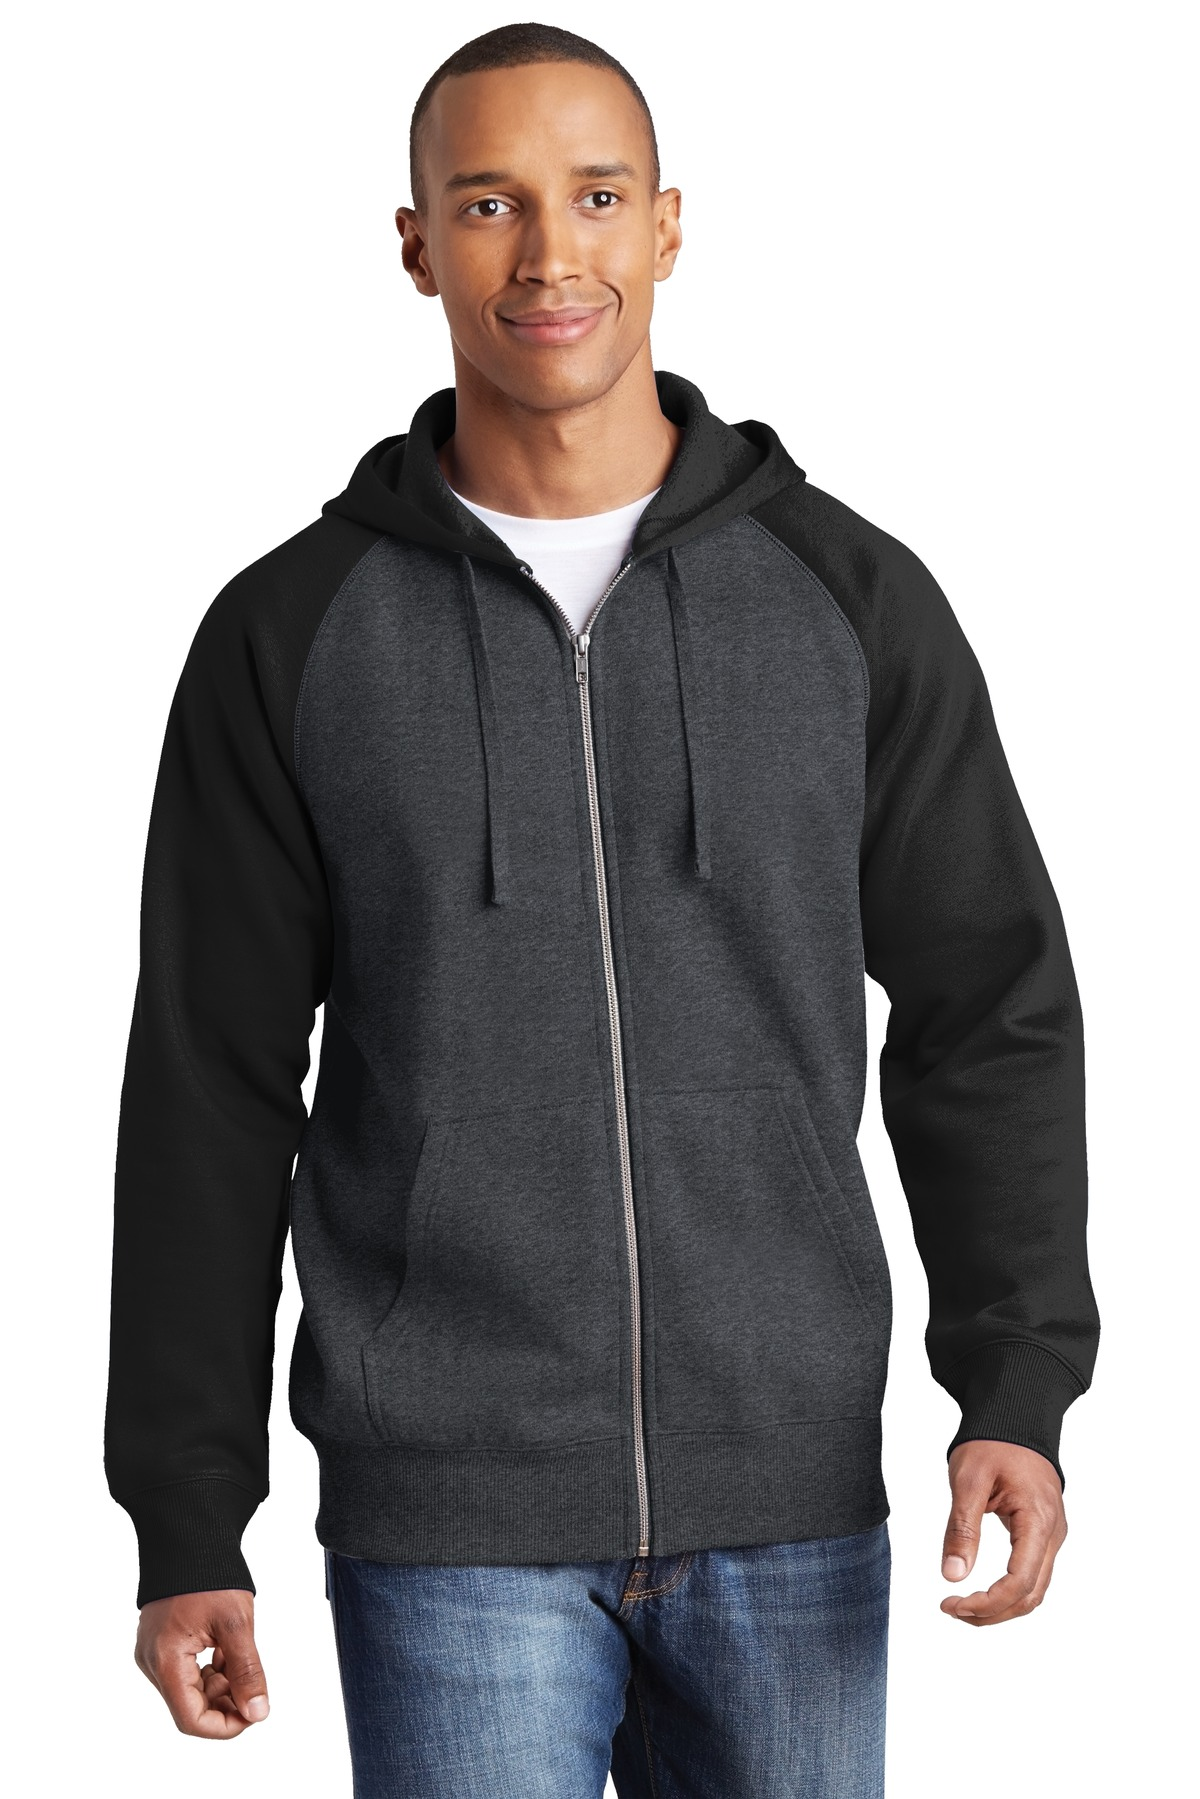 Sport-Tek ®  Raglan Colorblock Full-Zip Hooded Fleece Jacket.  ST269 - Graphite Heather/ Black